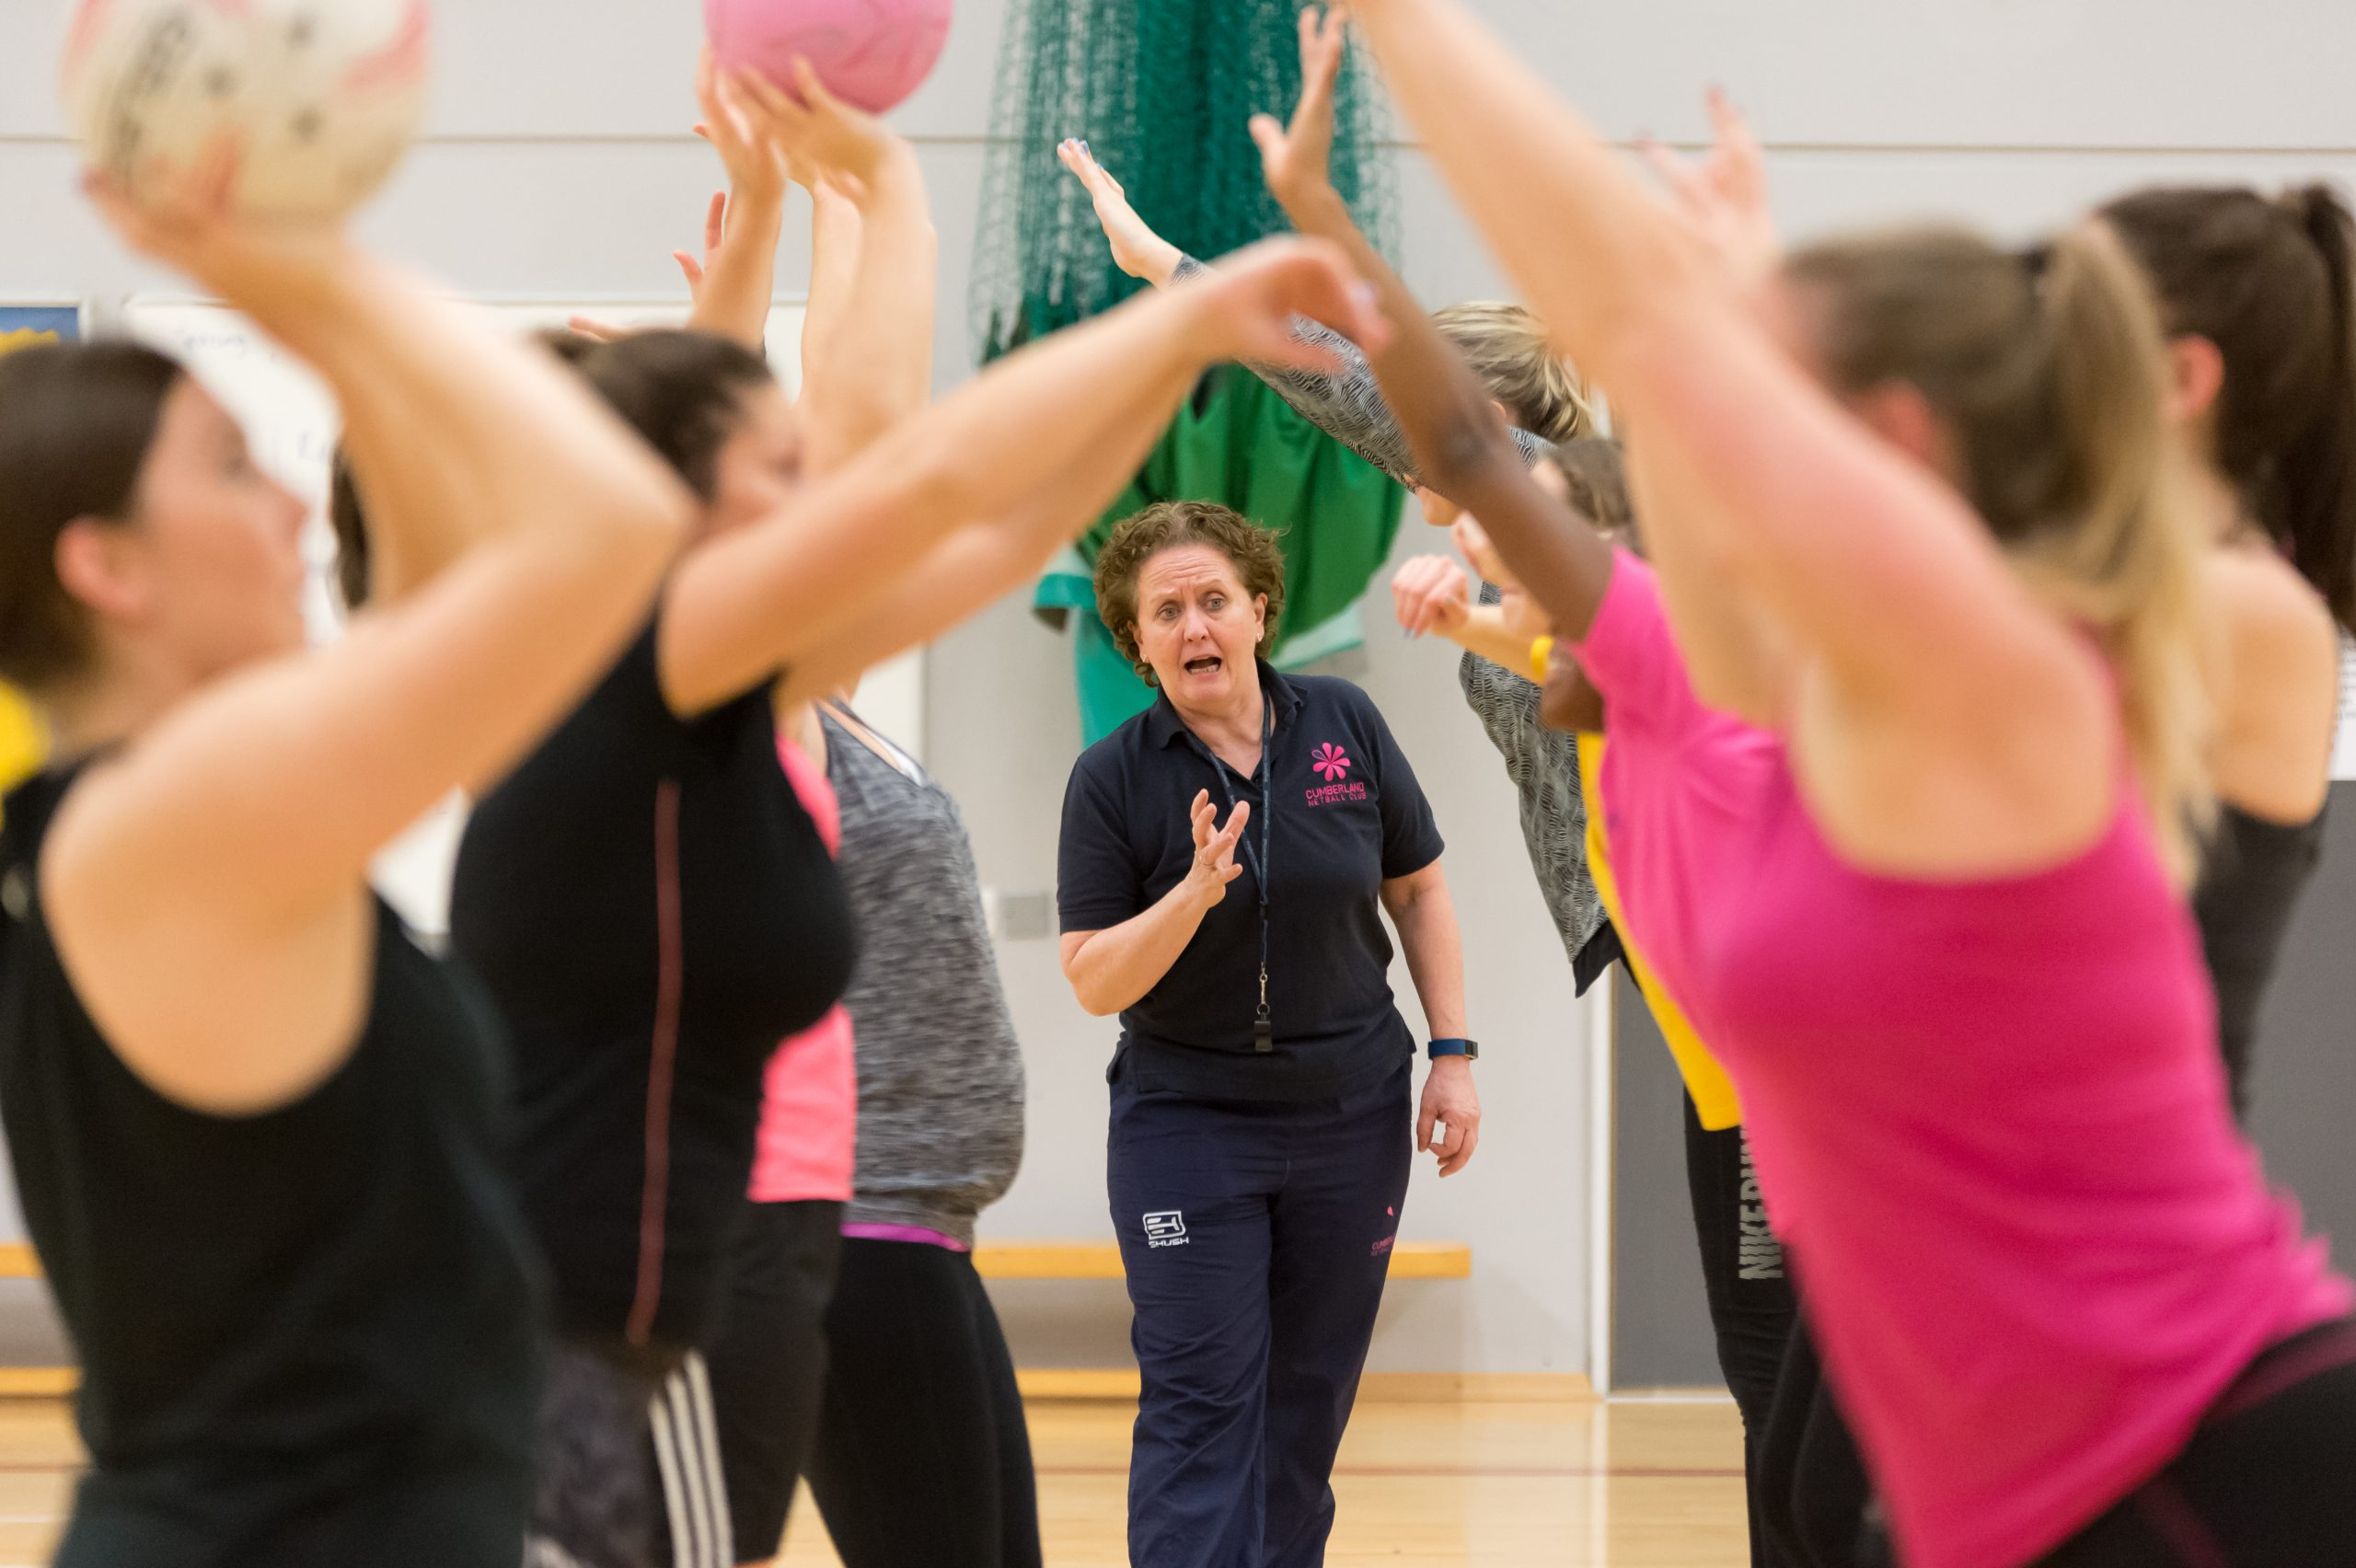 Platform launched to assess impact of £100m Recovery Fund on public leisure facilities and their contribution to active communities